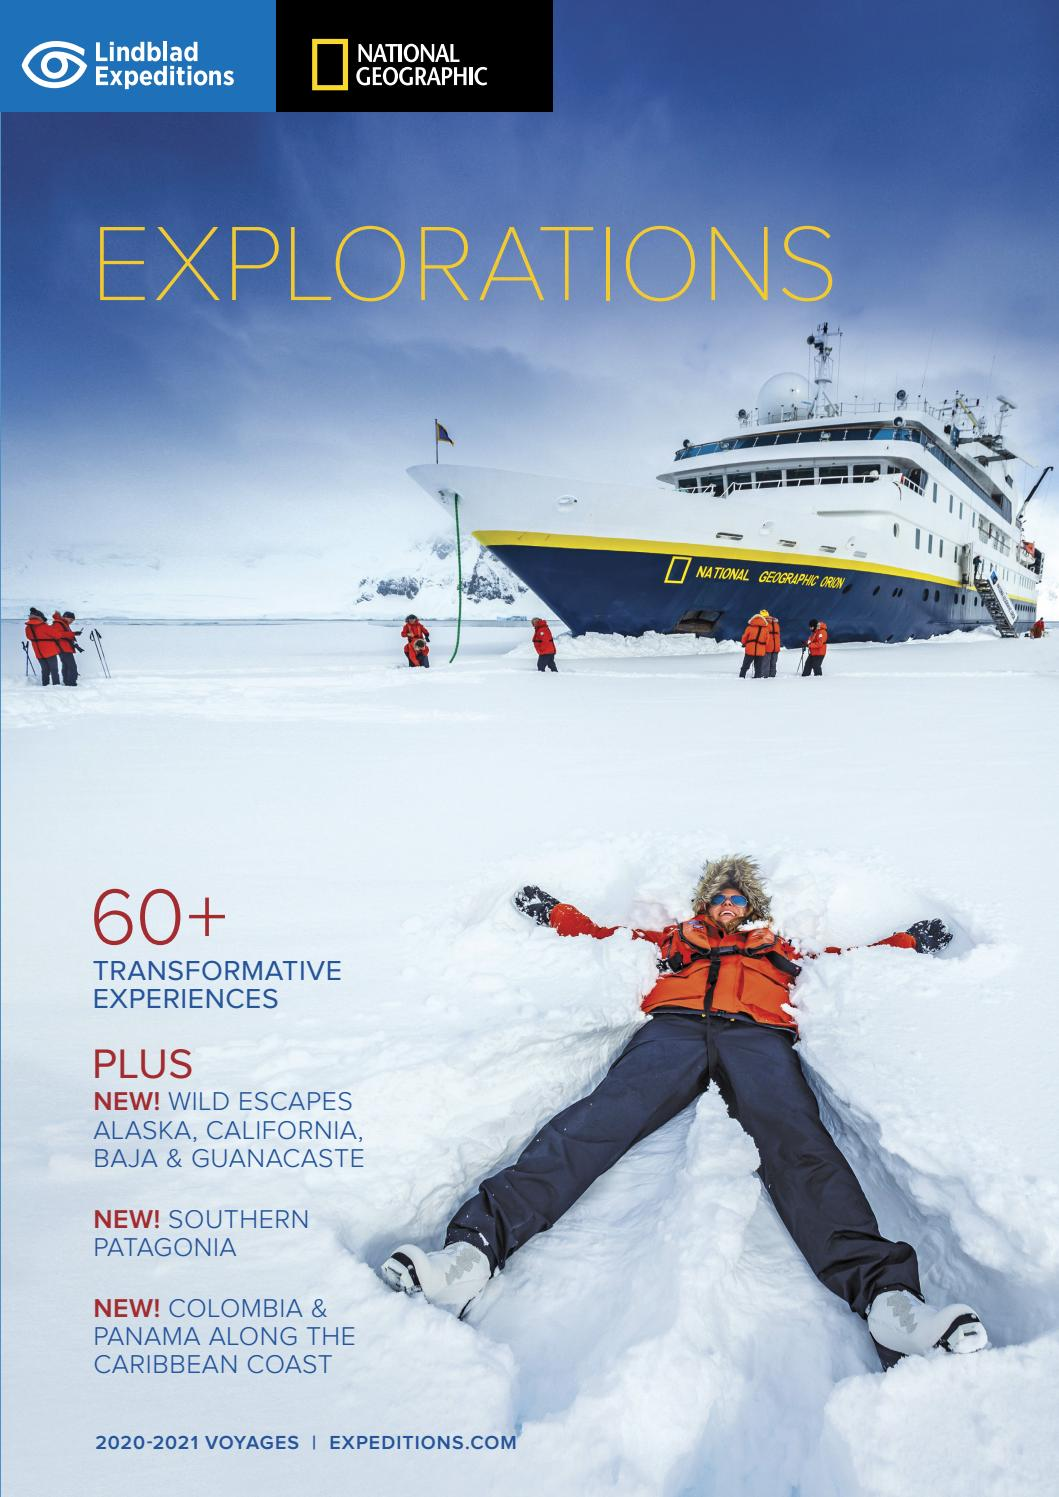 Lindblad Expeditions Explorations